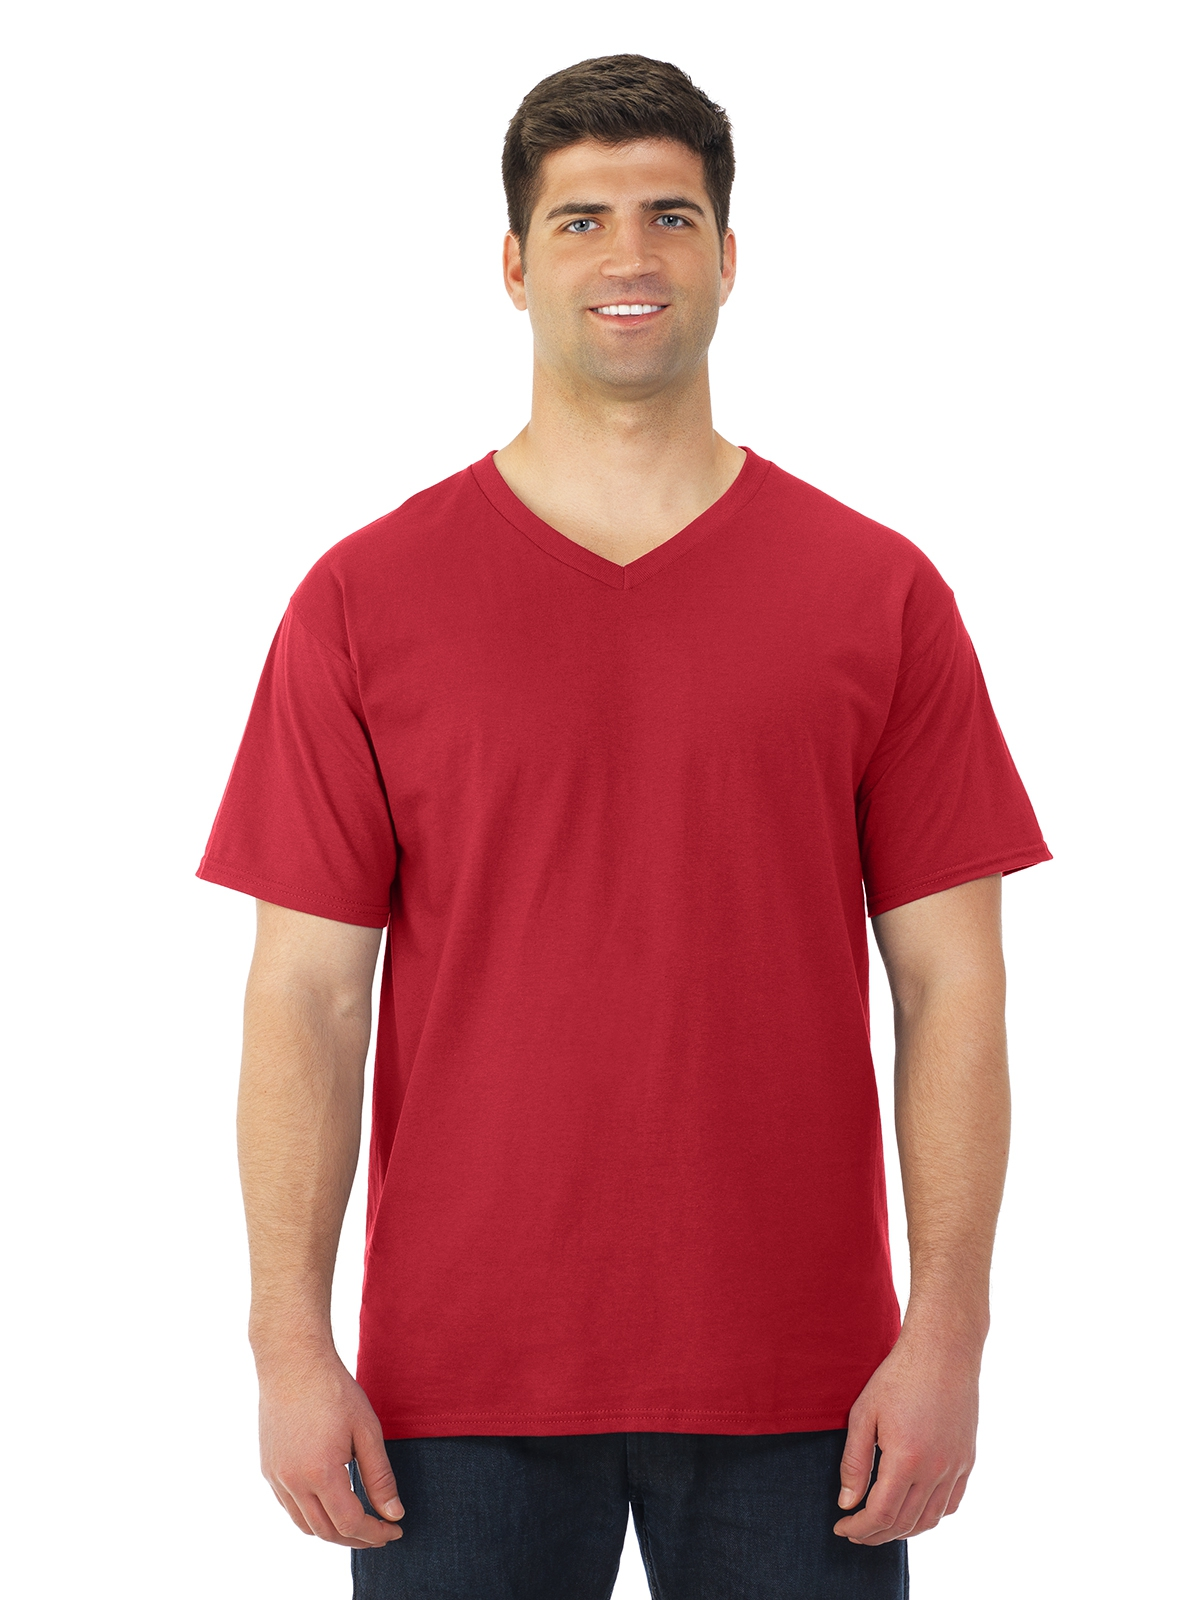 Fruit of the Loom 39VR HD Cotton™ V-Neck T-Shirt